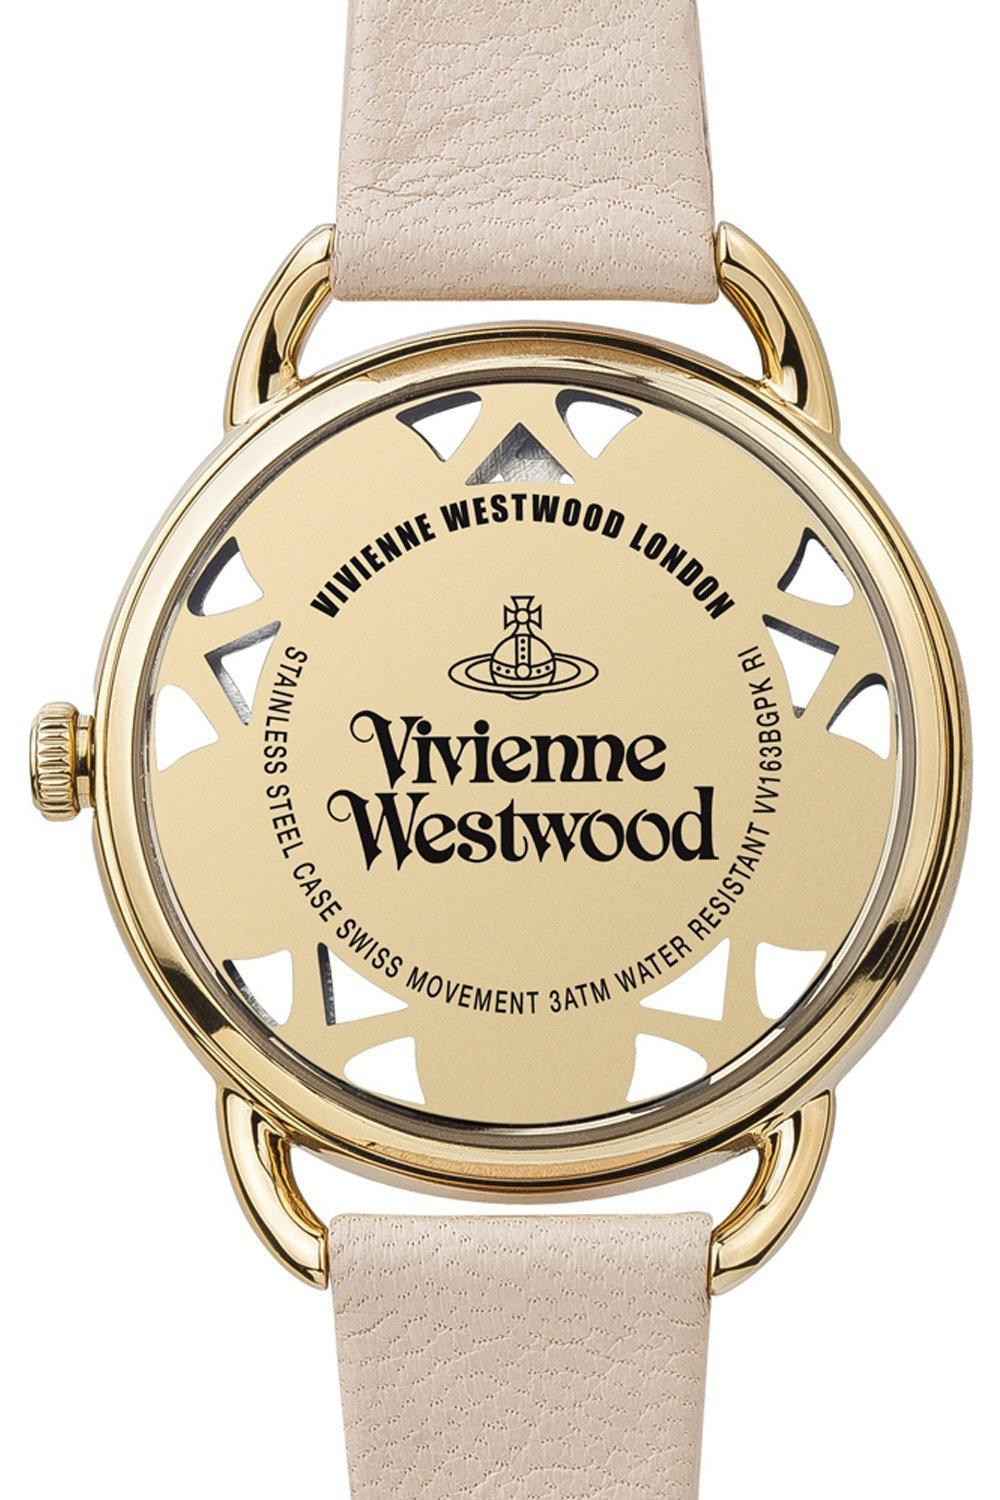 VIVIENNE WESTWOOD Pink Leather Women's Leadenhall Wristwatch VV163BGPK-Vivienne Westwood-The Freperie